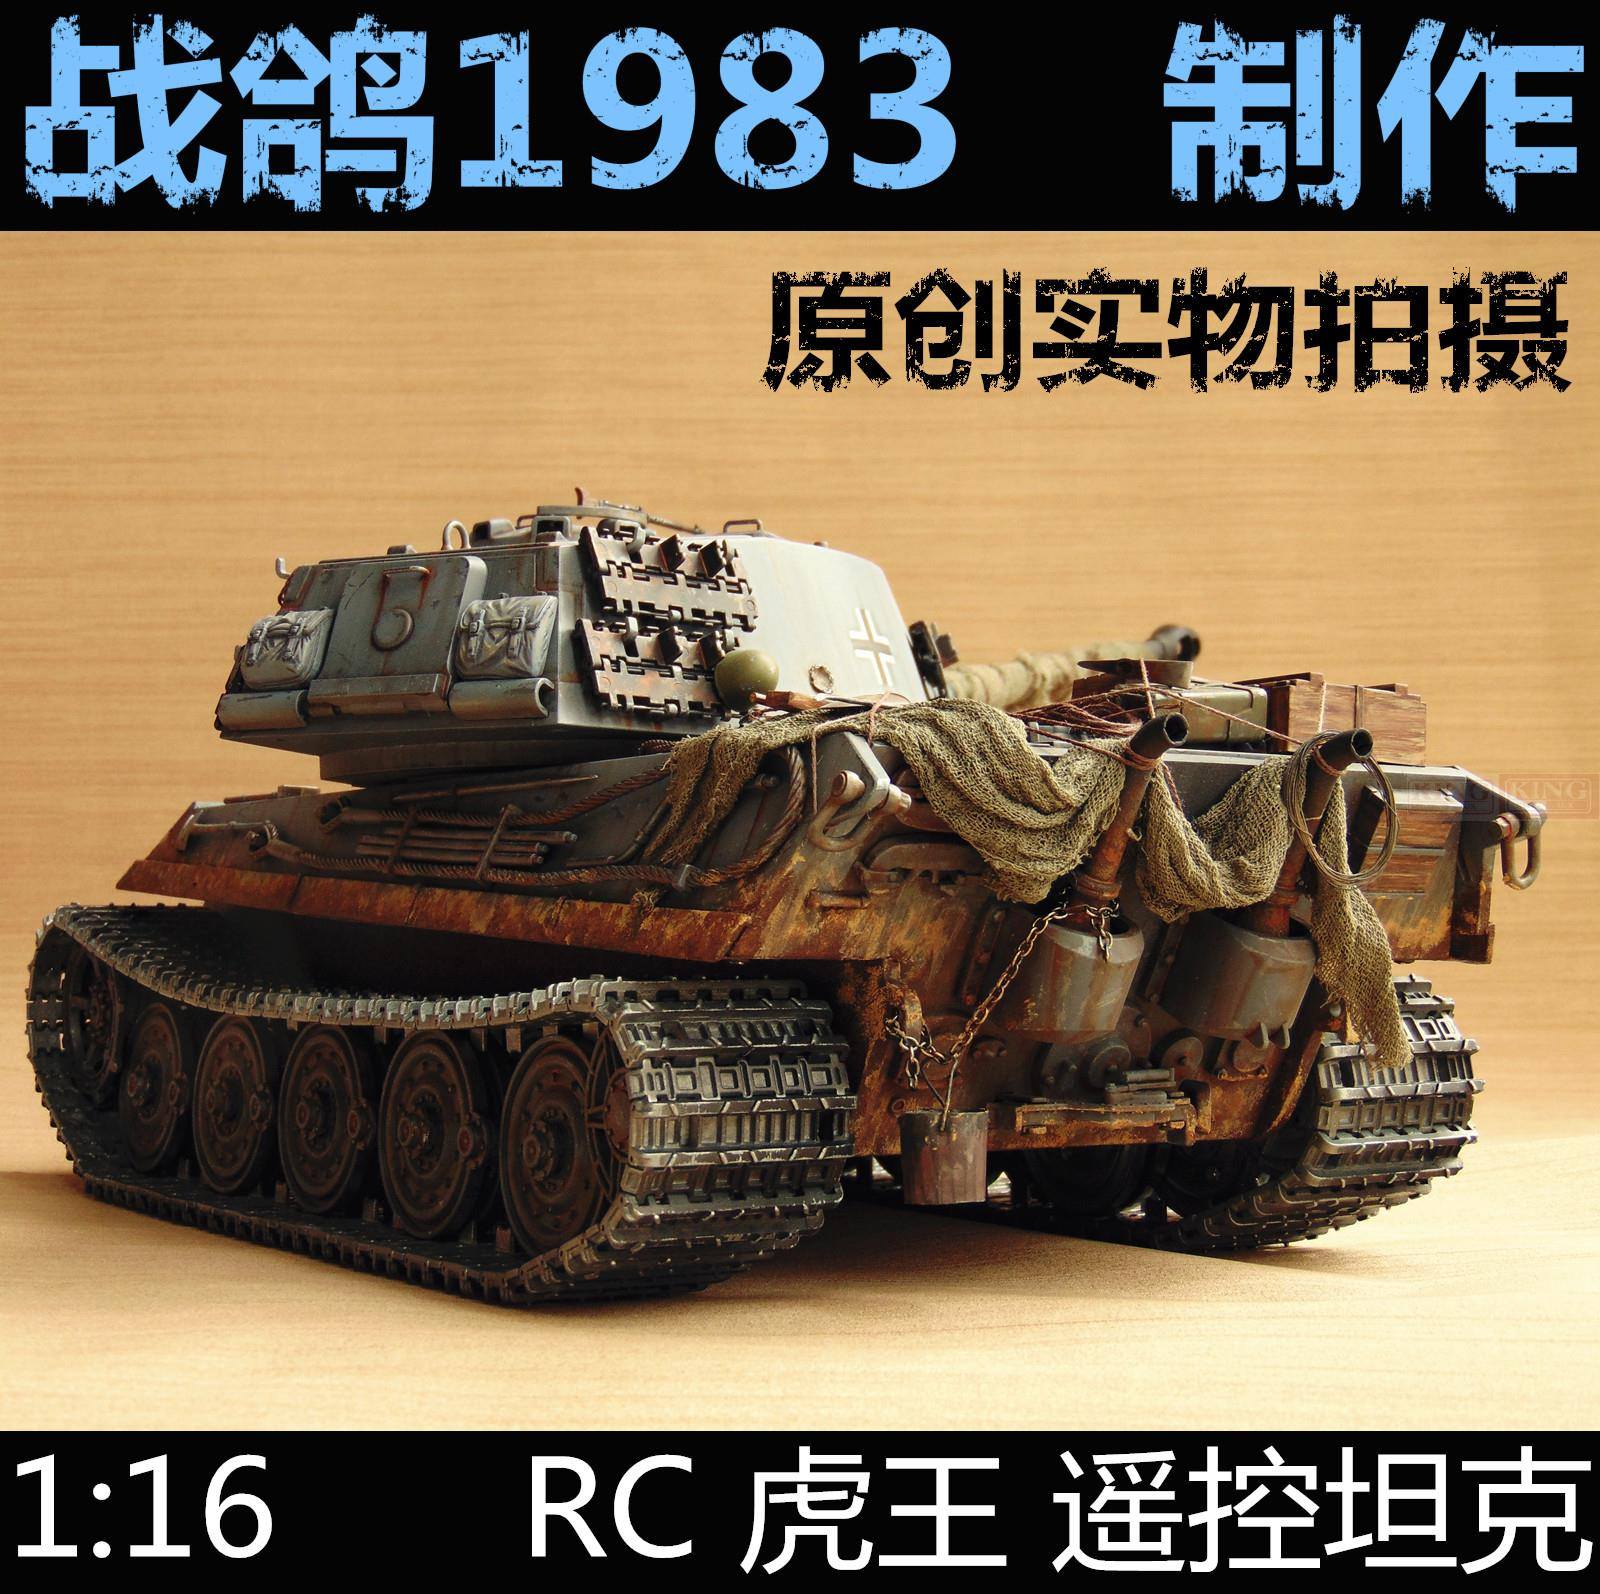 KNL HOBBY 1:16 RC King Tiger tank model remote control OEM heavy coating of paint to do the old upgrade new phoenix 11207 b777 300er pk gii 1 400 skyteam aviation indonesia commercial jetliners plane model hobby